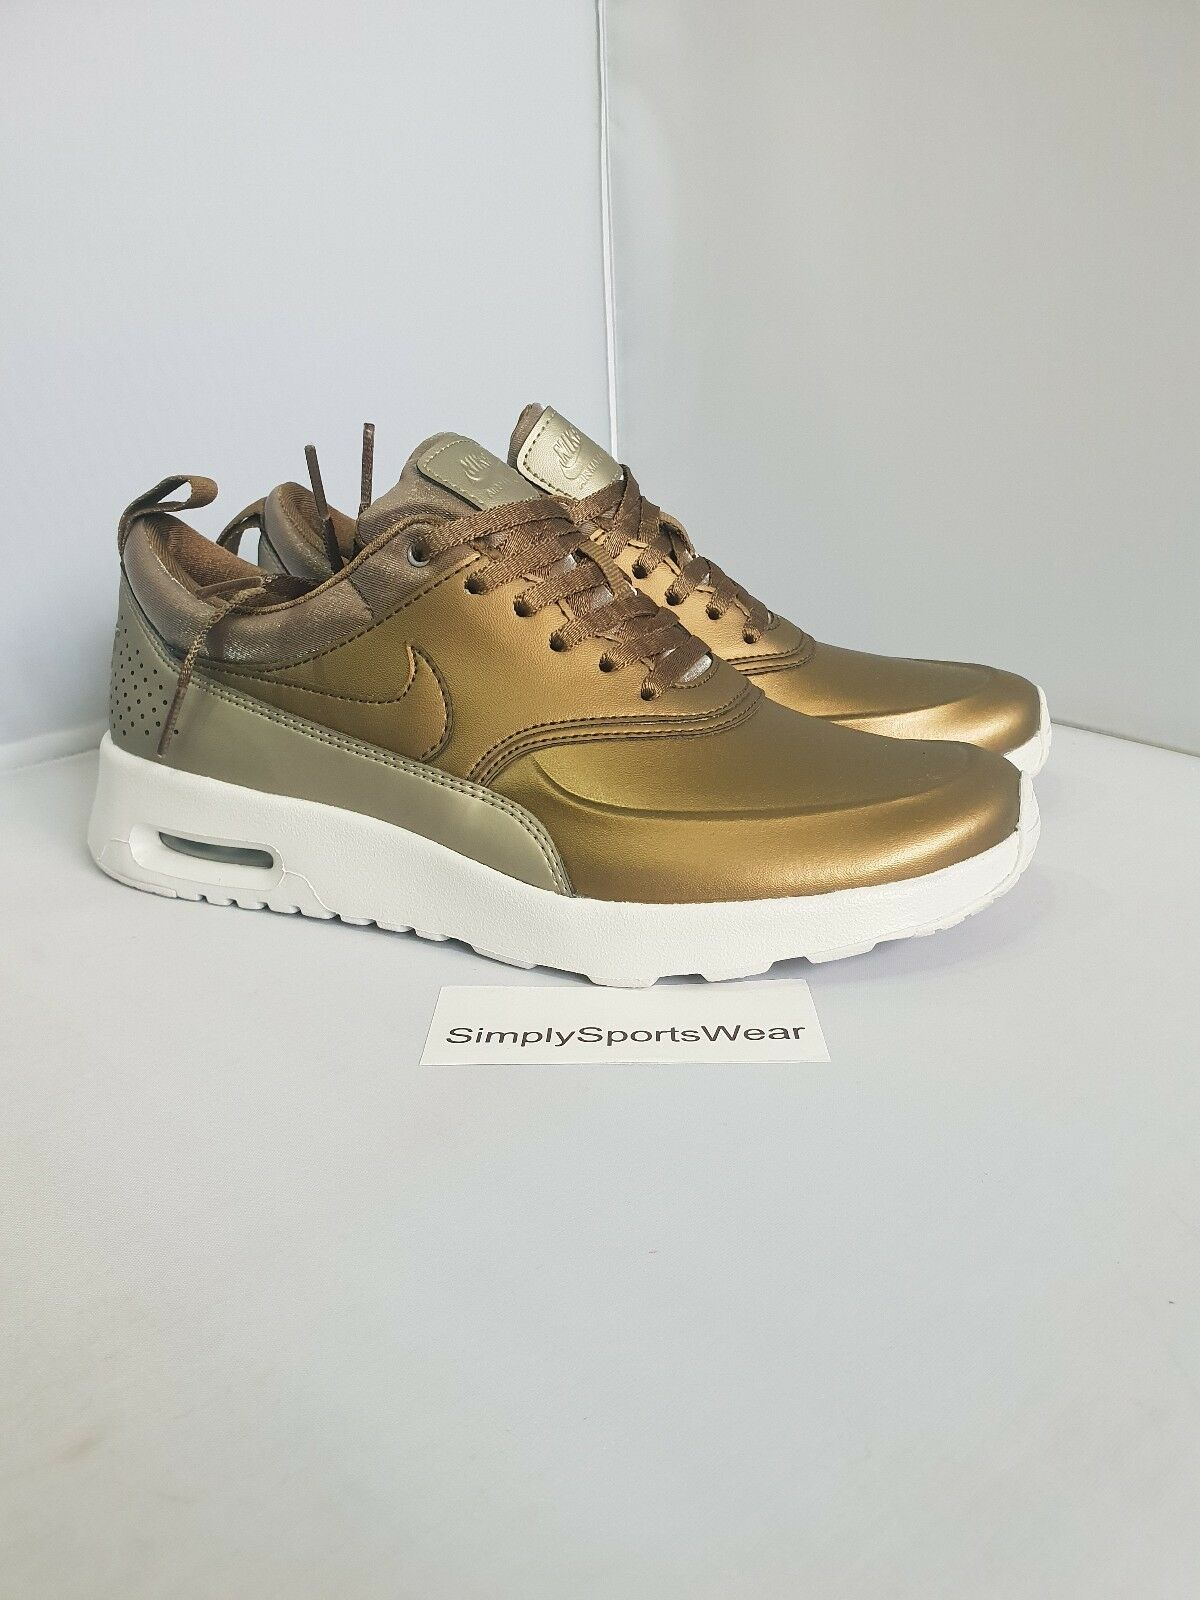 Nike Femme Air Max Thea PRM Or Métallique  UK 4.5 US 7 EU 38